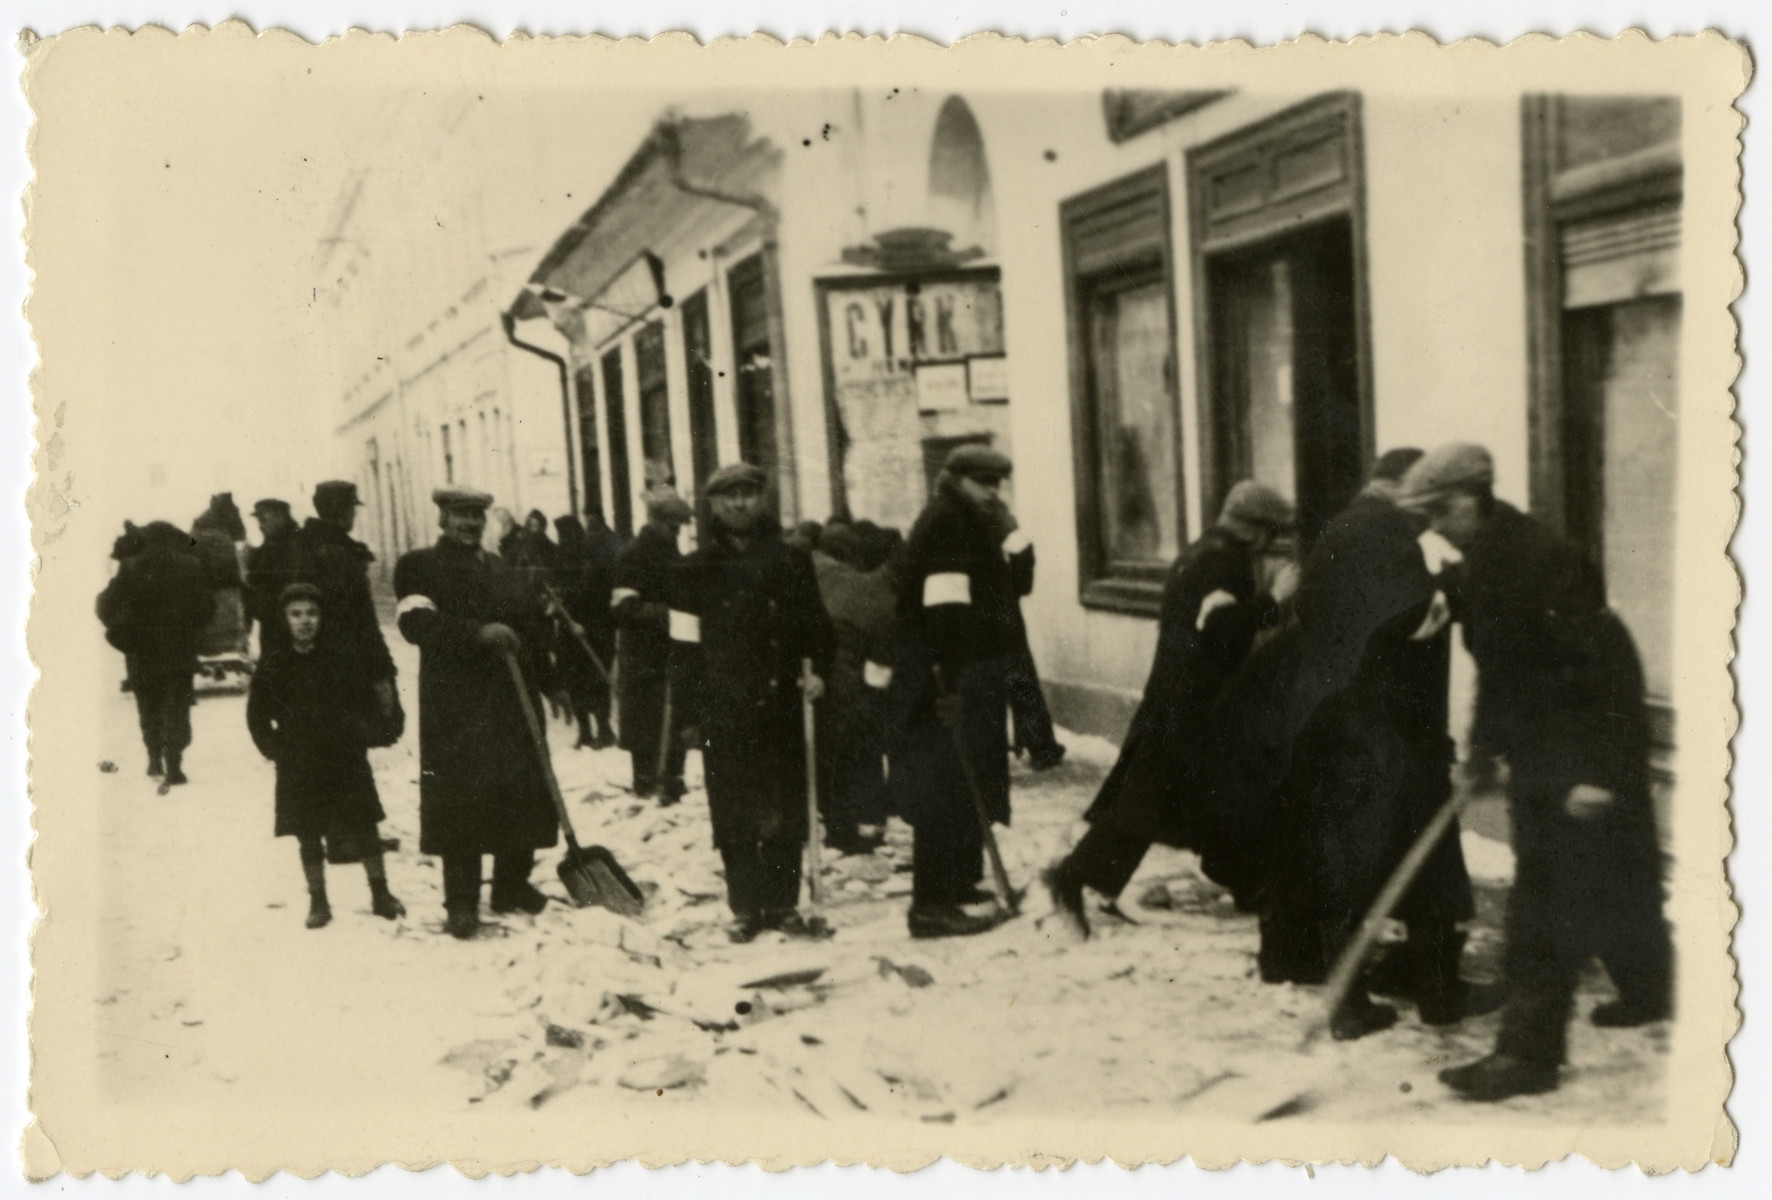 Jewish men shovel up debris on a street in the Krosno ghetto.